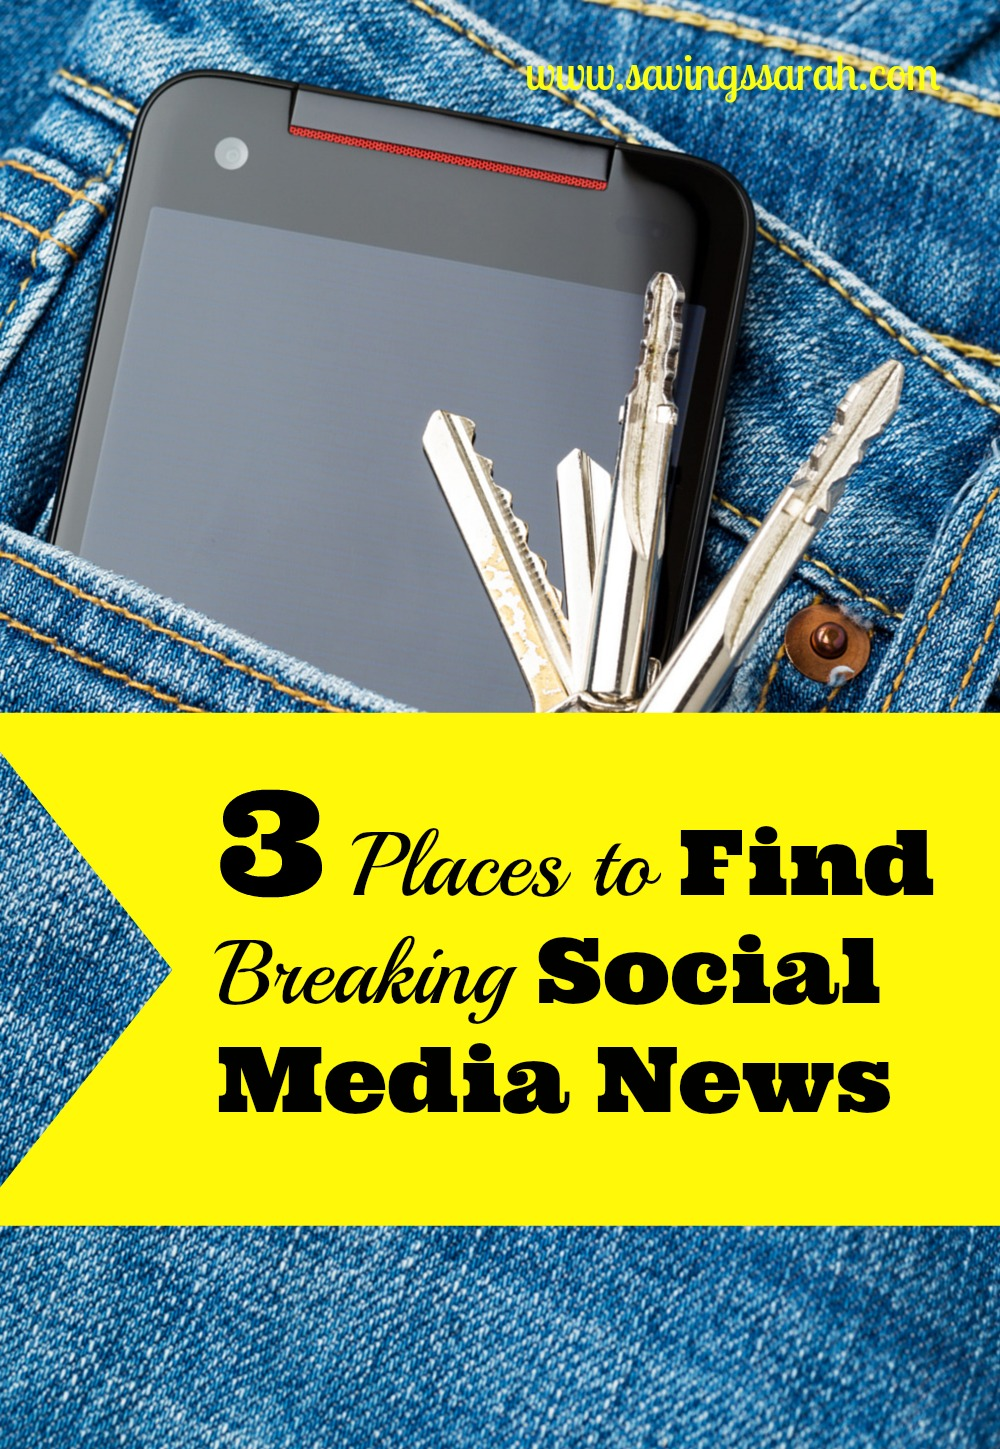 3 Places to Find Breaking Social Media News